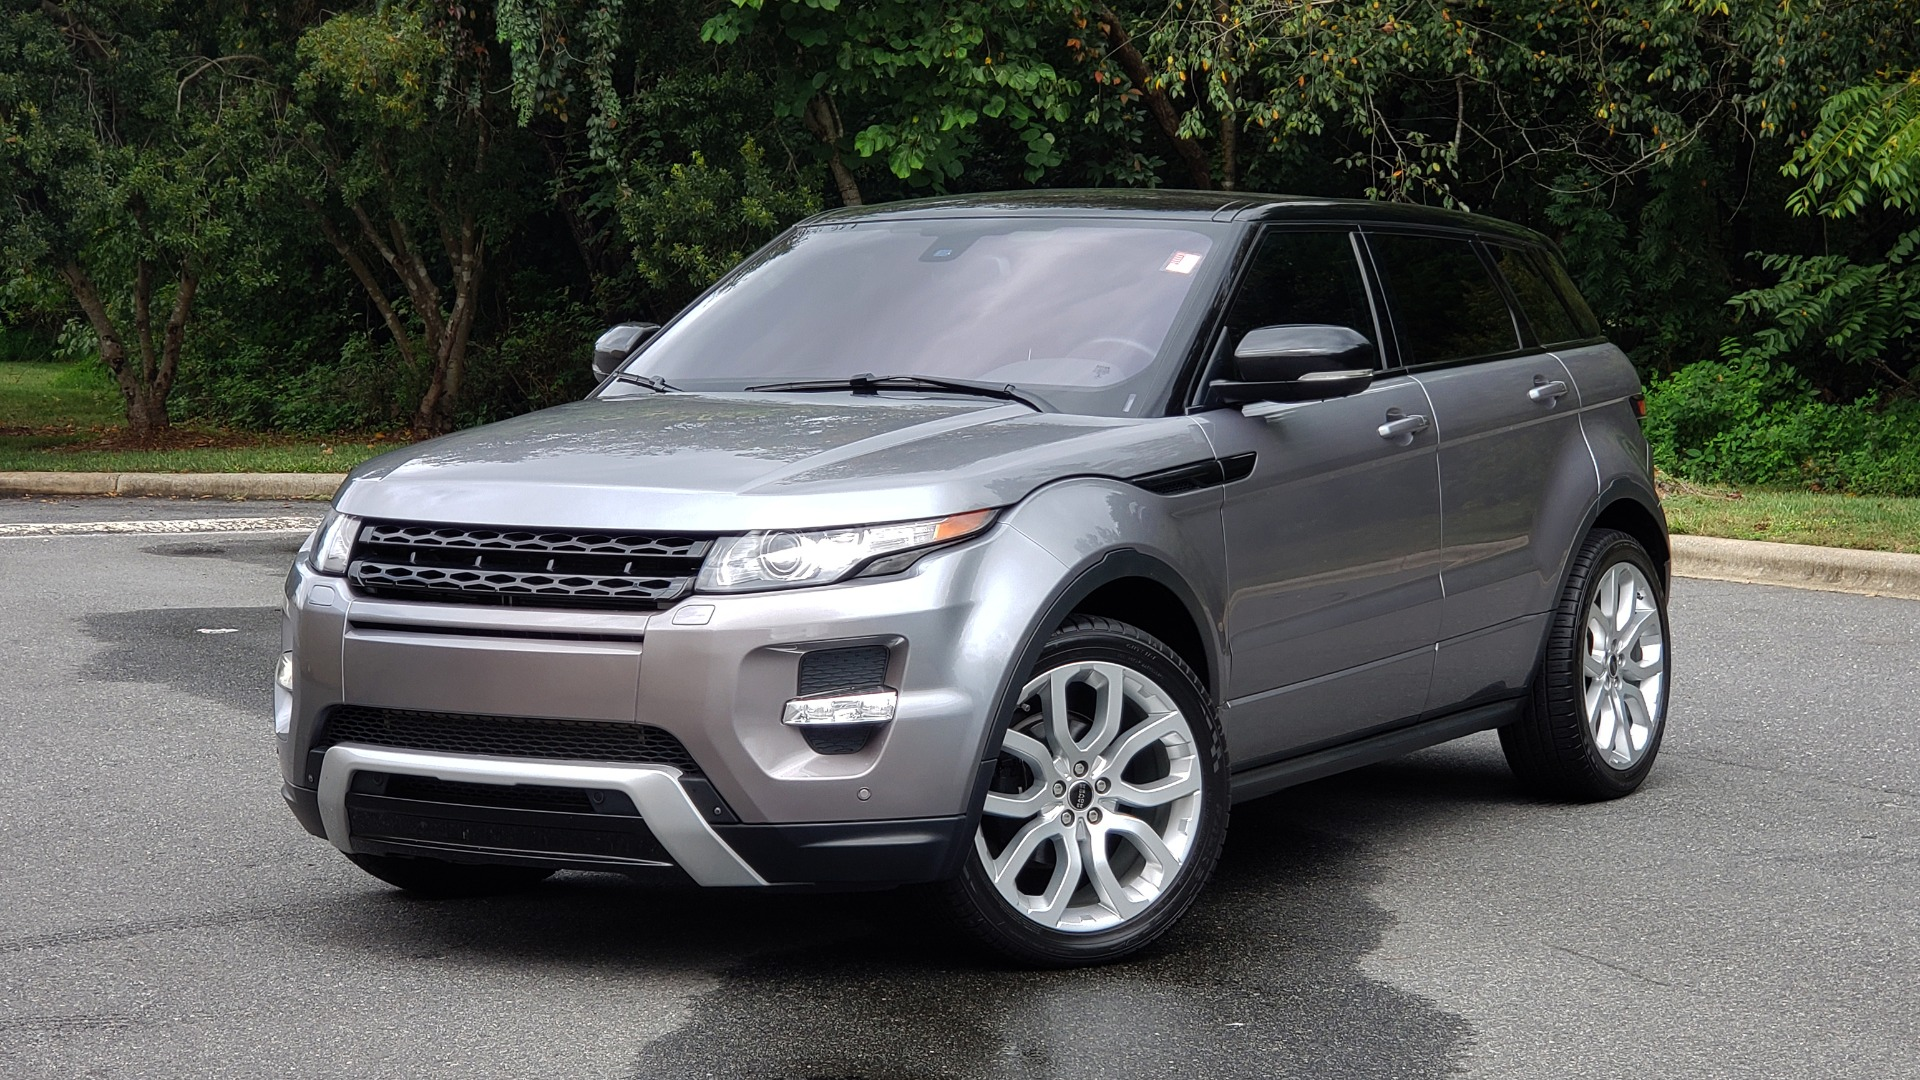 Used 2013 Land Rover RANGE ROVER EVOQUE DYNAMIC PREMIUM / NAV / PANO-ROOF / BLIND SPOT / REARVIEW for sale Sold at Formula Imports in Charlotte NC 28227 1